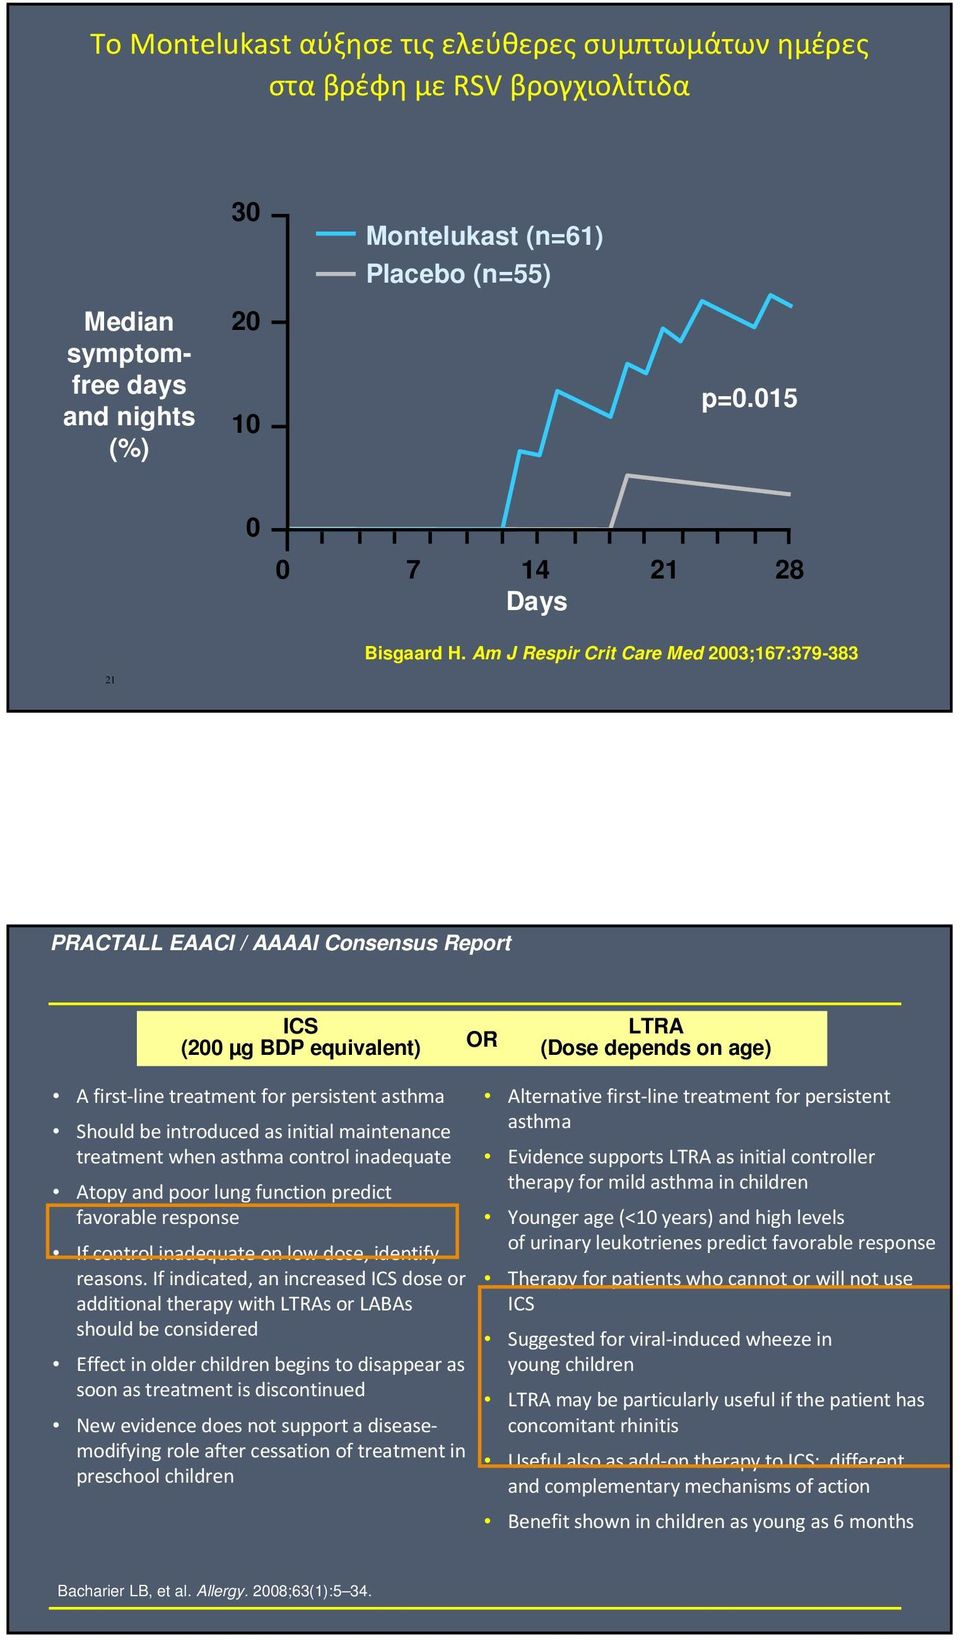 Am J Respir Crit Care Med 2003;167:379-383 21 PRACTALL EAACI / AAAAI Consensus Report ICS (200 µg BDP equivalent) OR LTRA (Dose depends on age) A first-line treatment for persistent asthma Should be